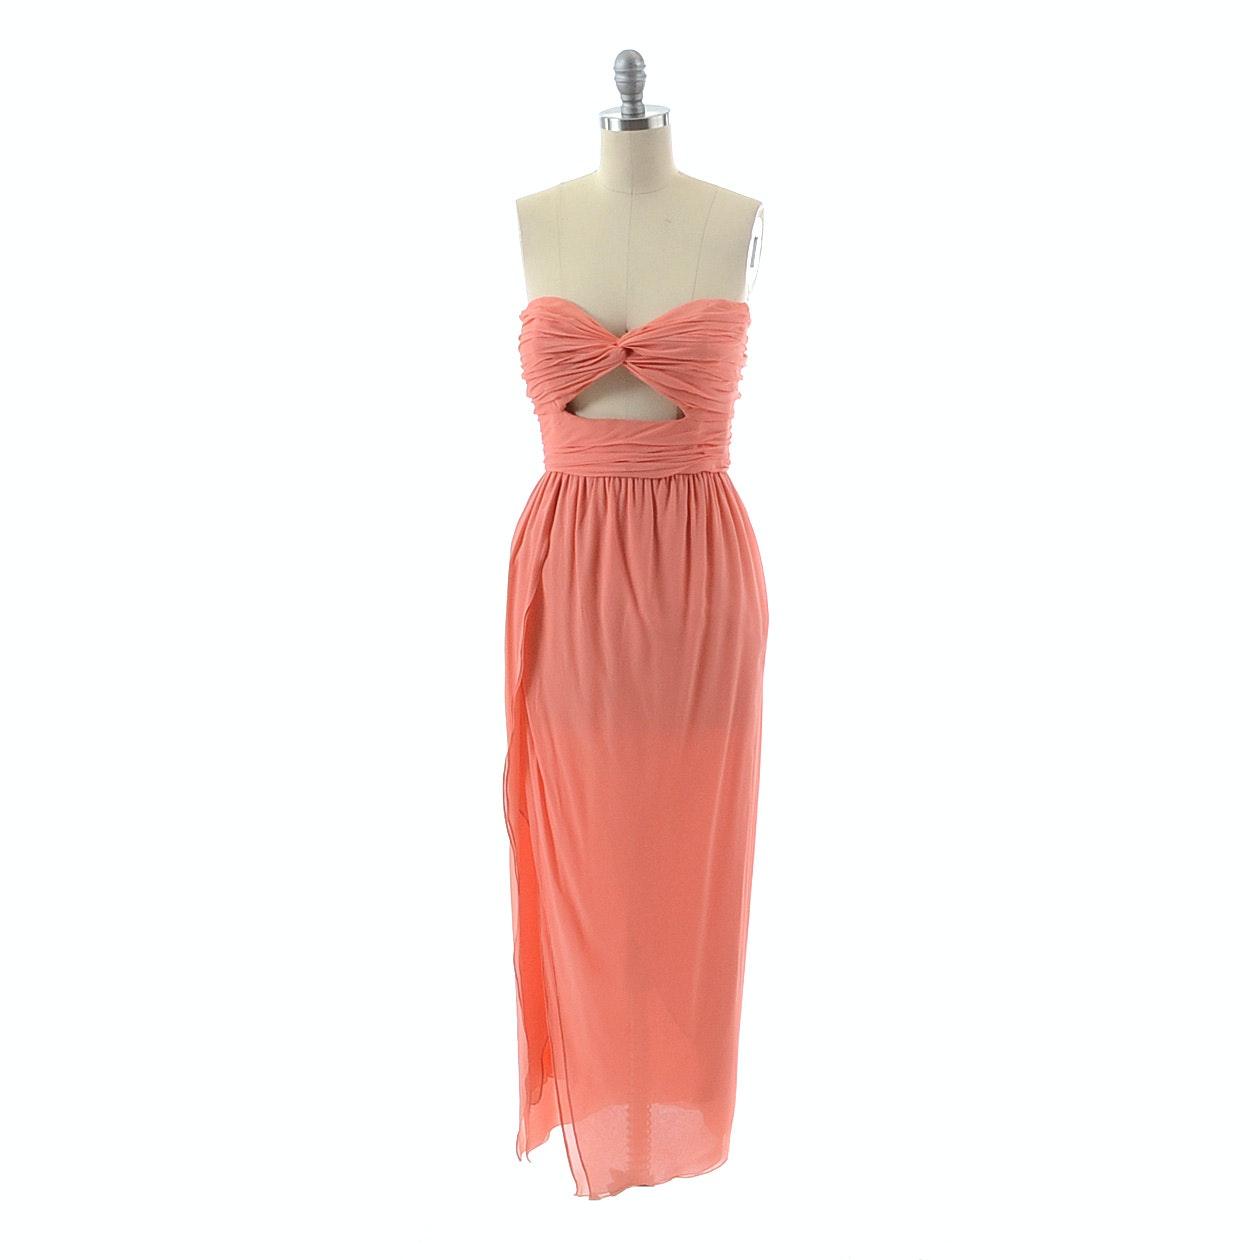 Carolyne Roehm Strapless Silk Chiffon Ruched Peep Front Evening Dress in Coral